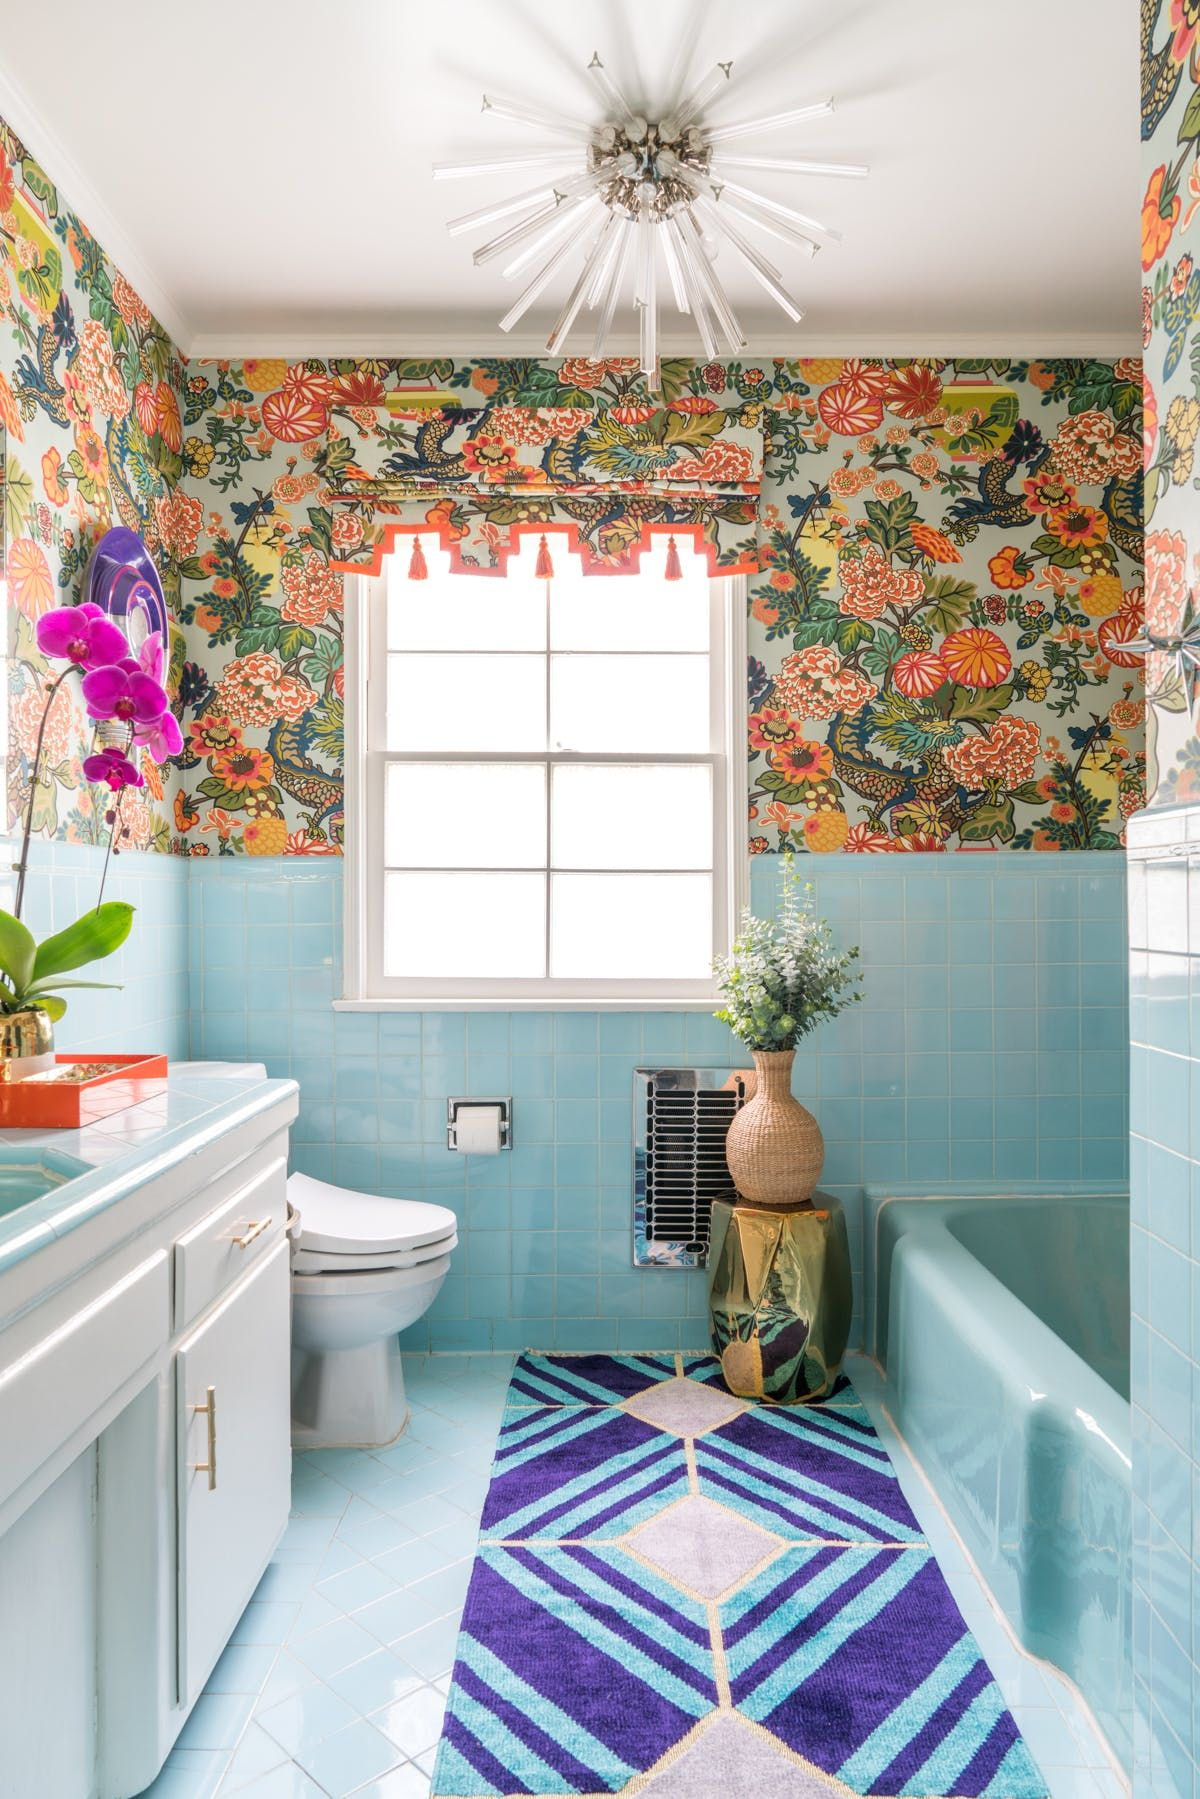 Disney Decor Abounds In This Colorful Rental Apartment Retro Bathrooms Vintage Bathrooms Bathroom Wallpaper